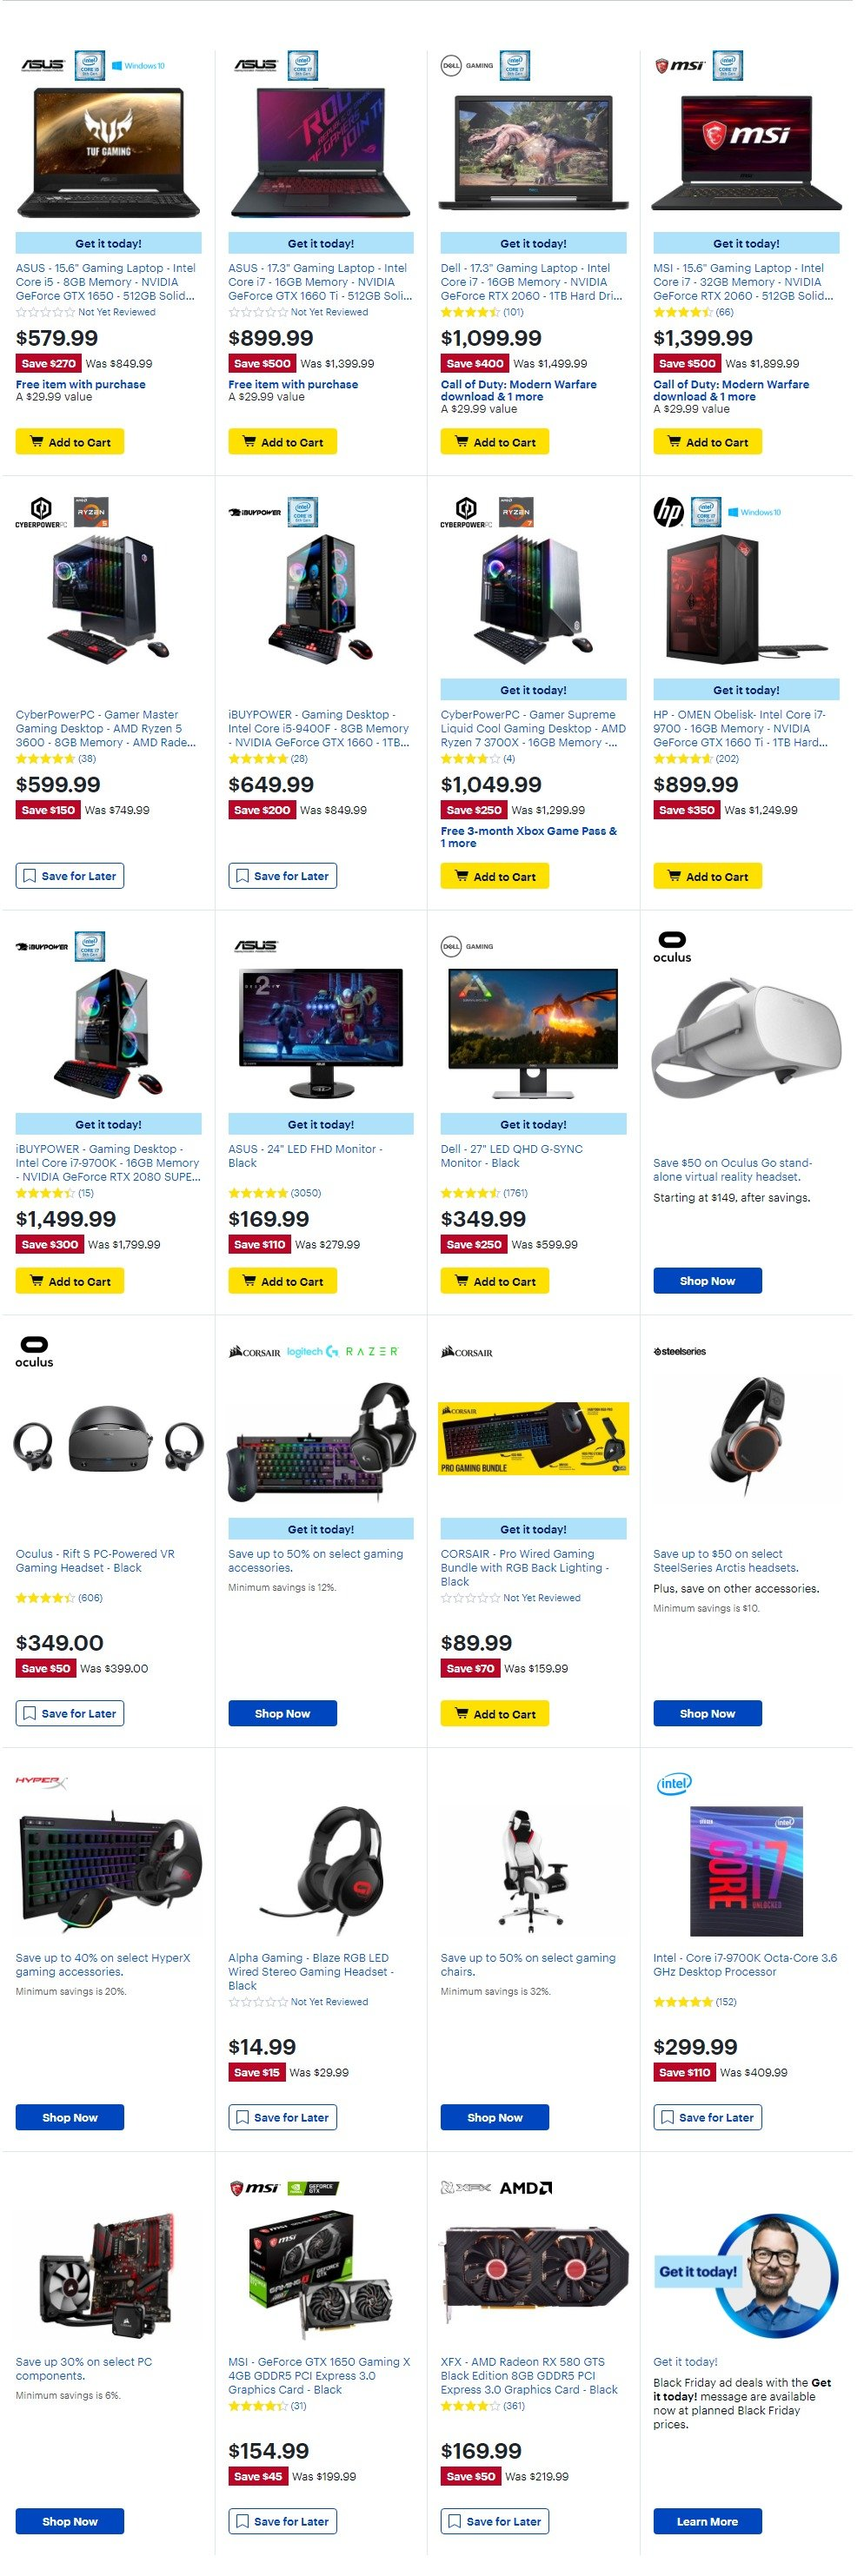 Best Buy Black Friday 2019 Page 50